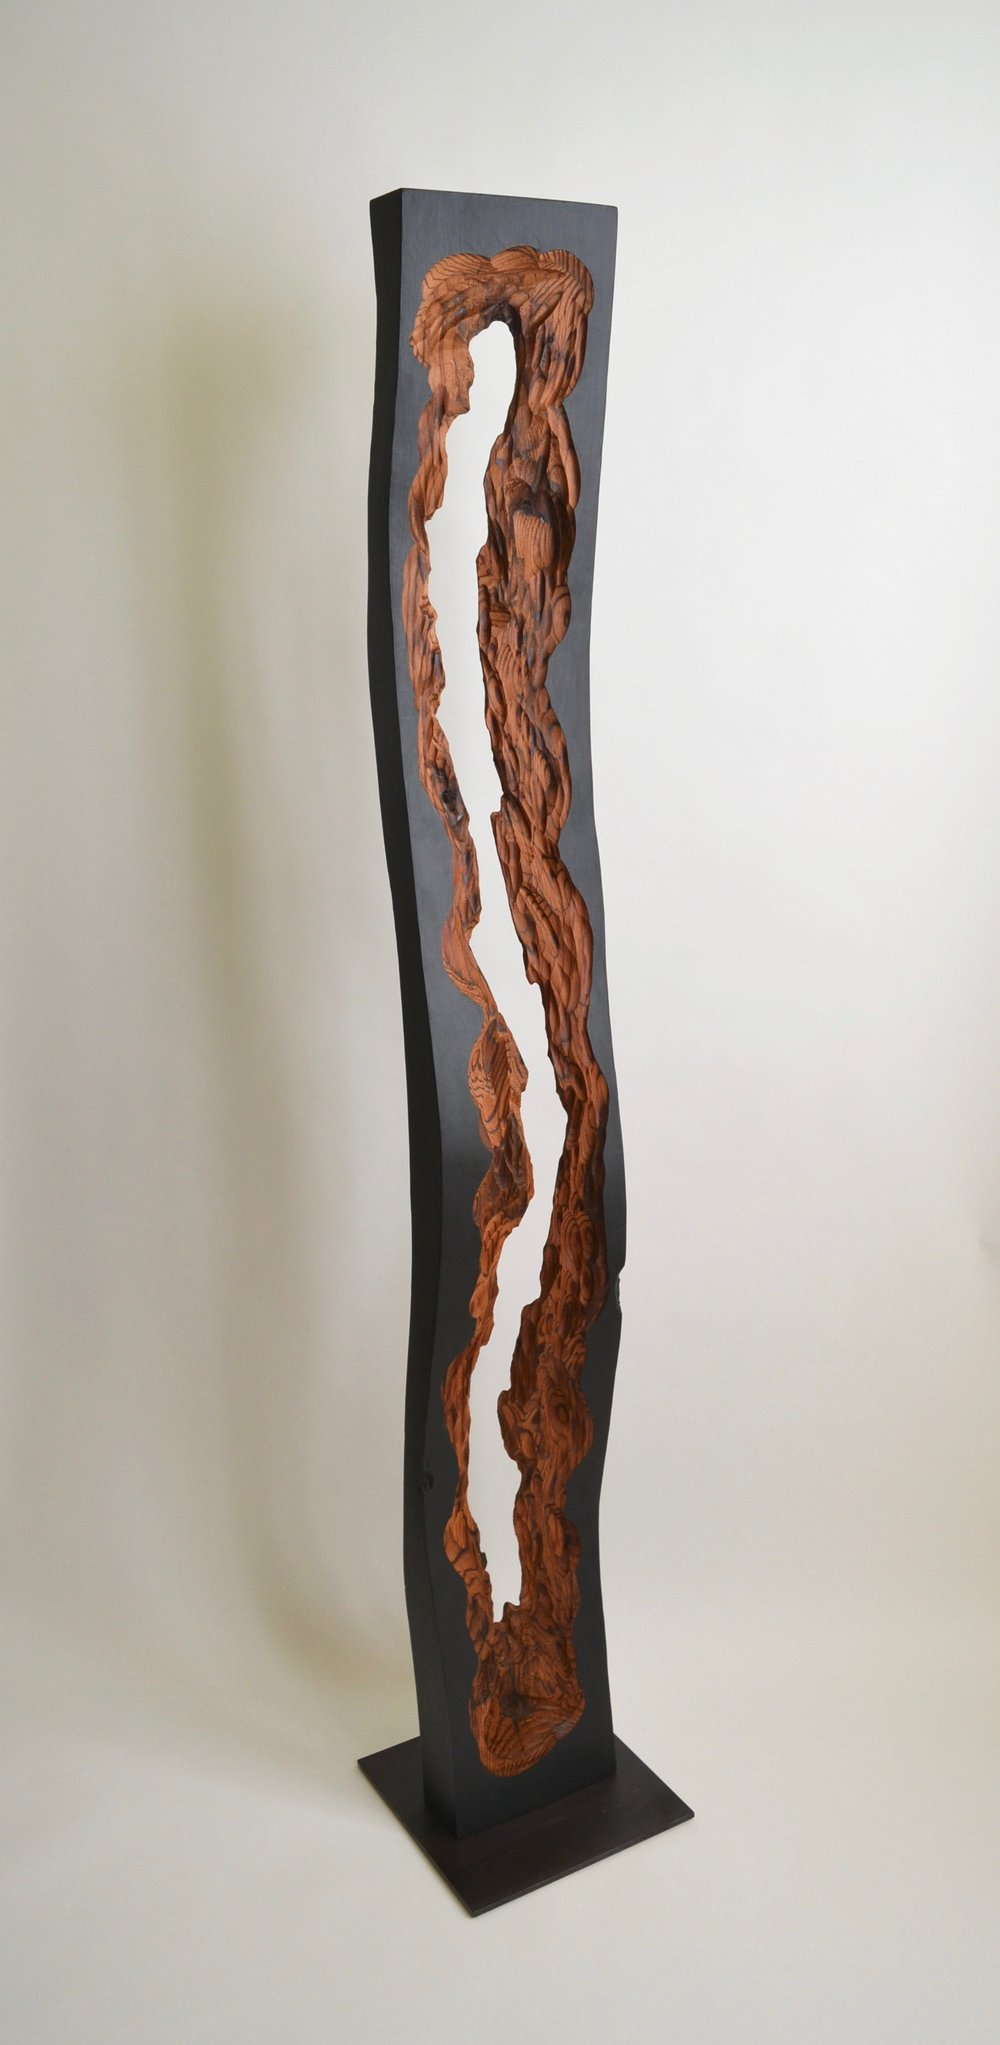 Contemporary Driftwood, 59x10x10, reclaimed redwood, at SFMOMA Artist Gallery